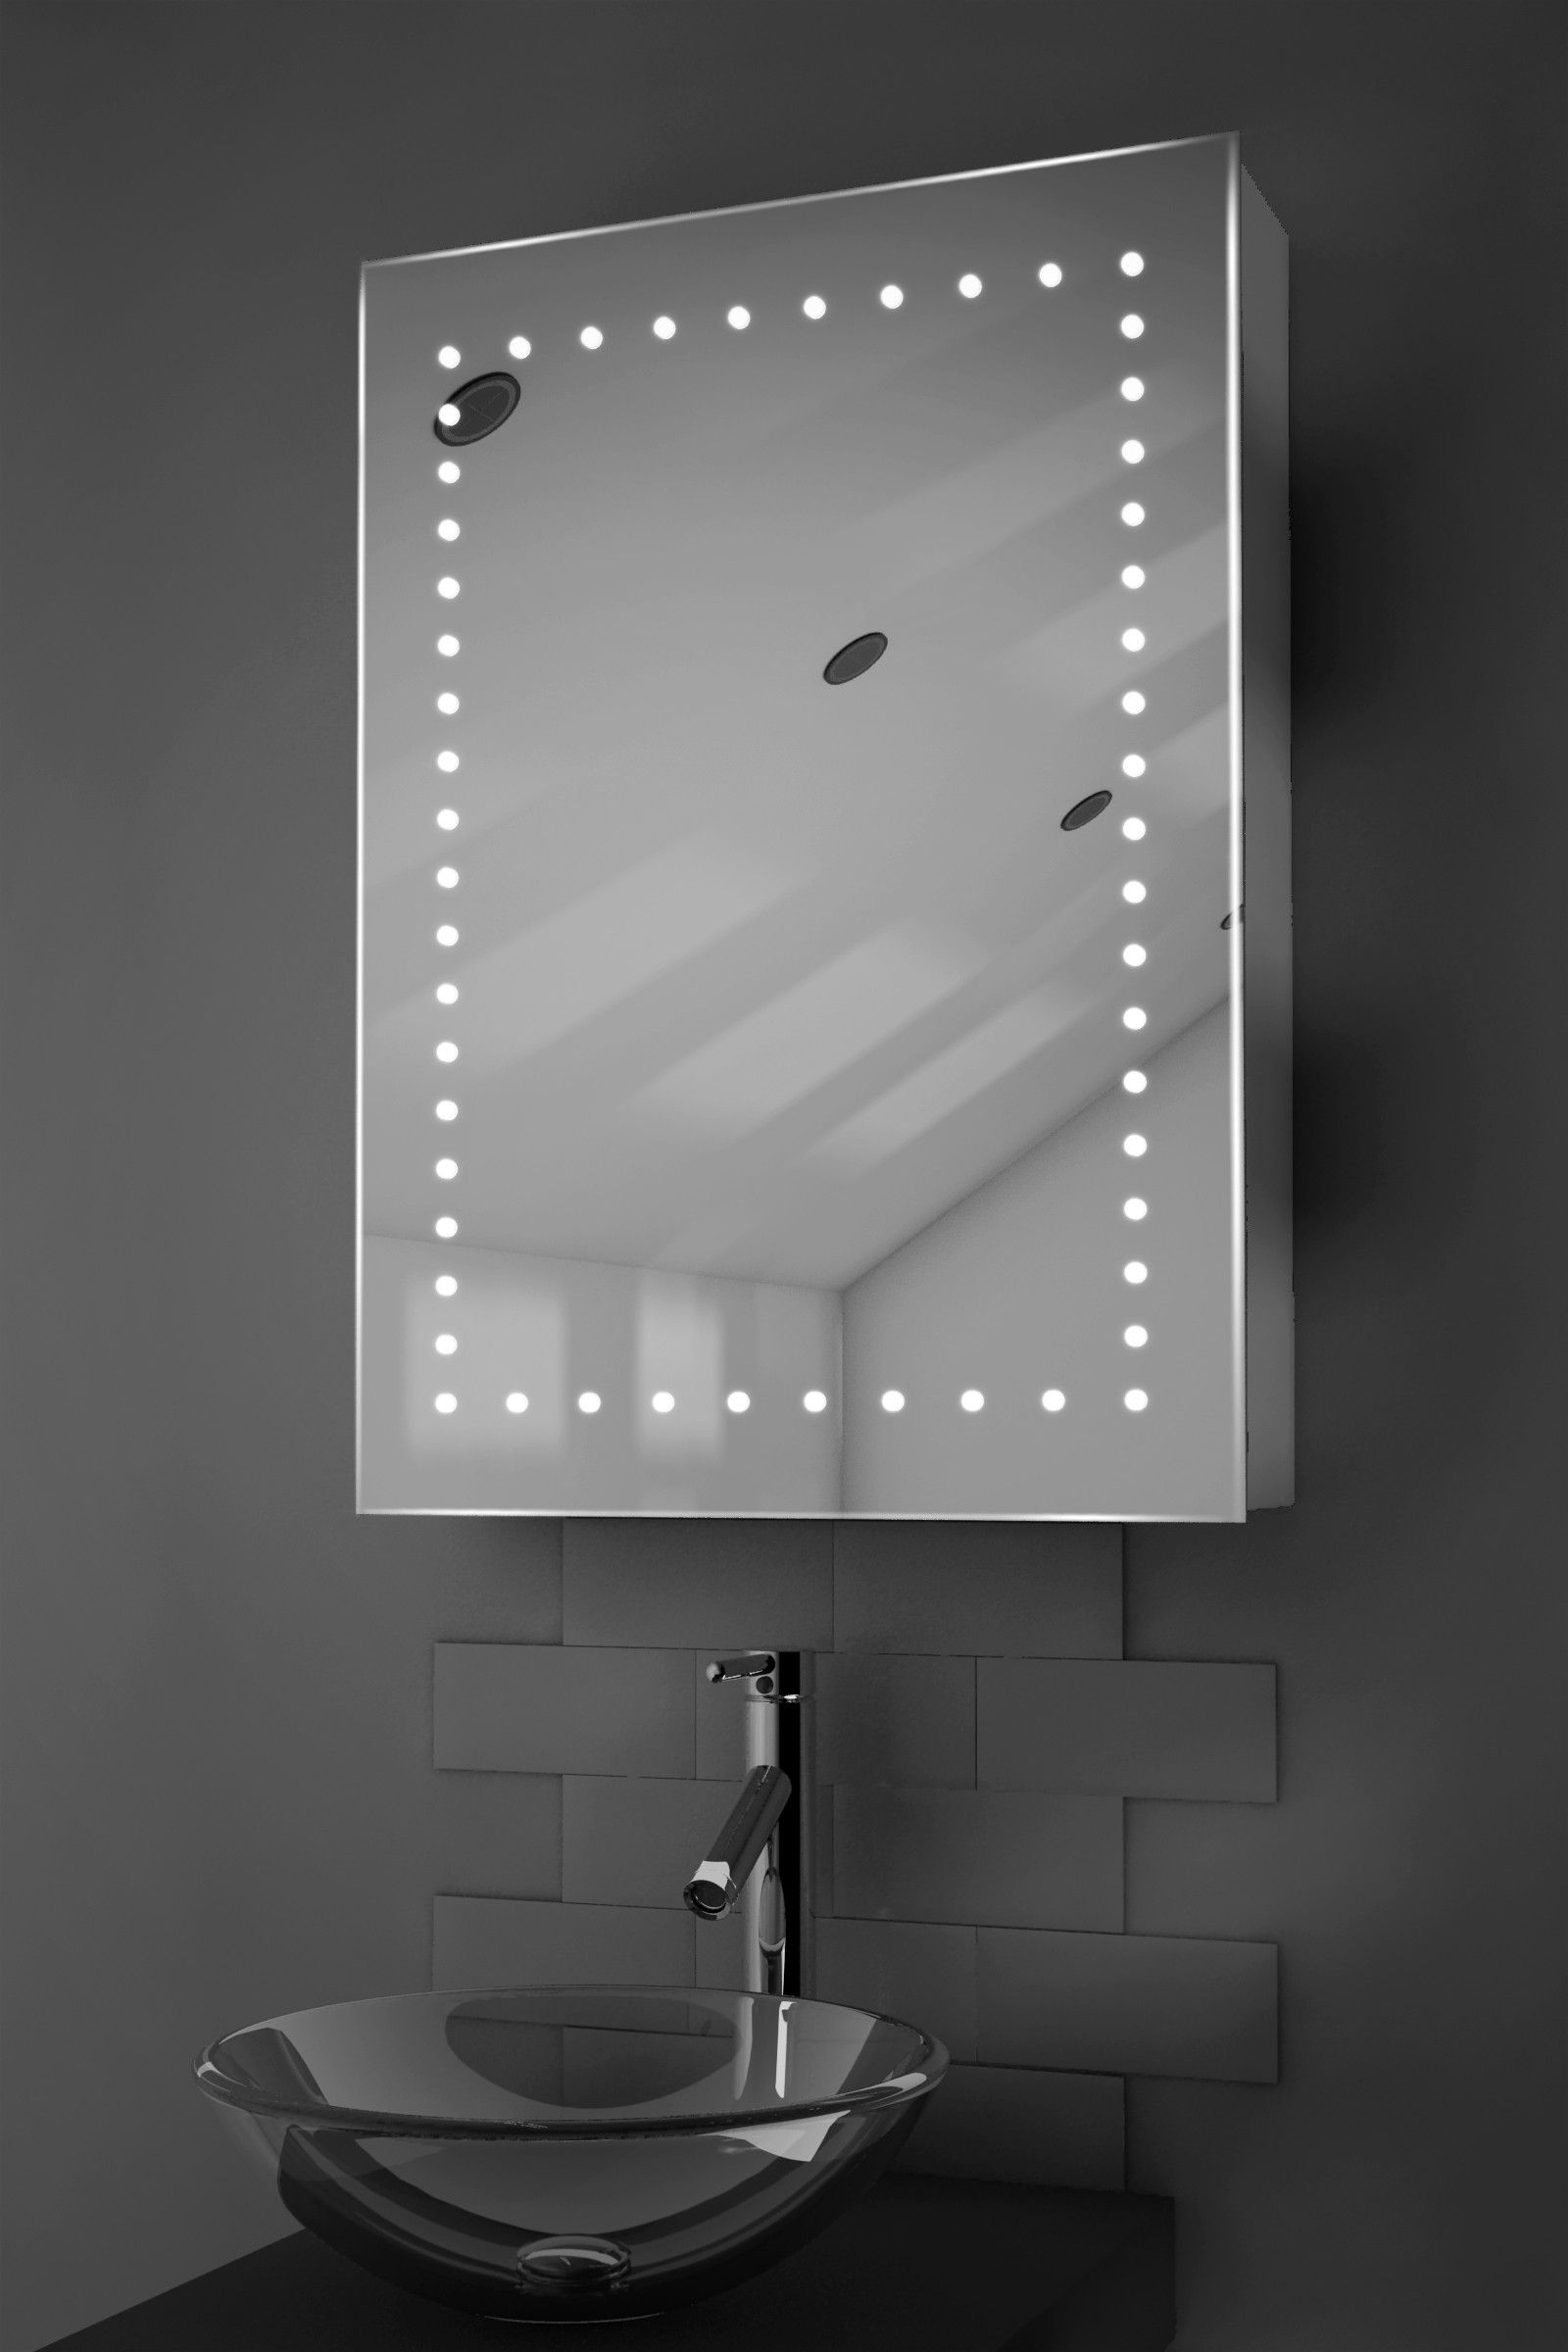 Swell Led Demist Cabinet Lighted Mirrors For Bathrooms Home Interior And Landscaping Oversignezvosmurscom